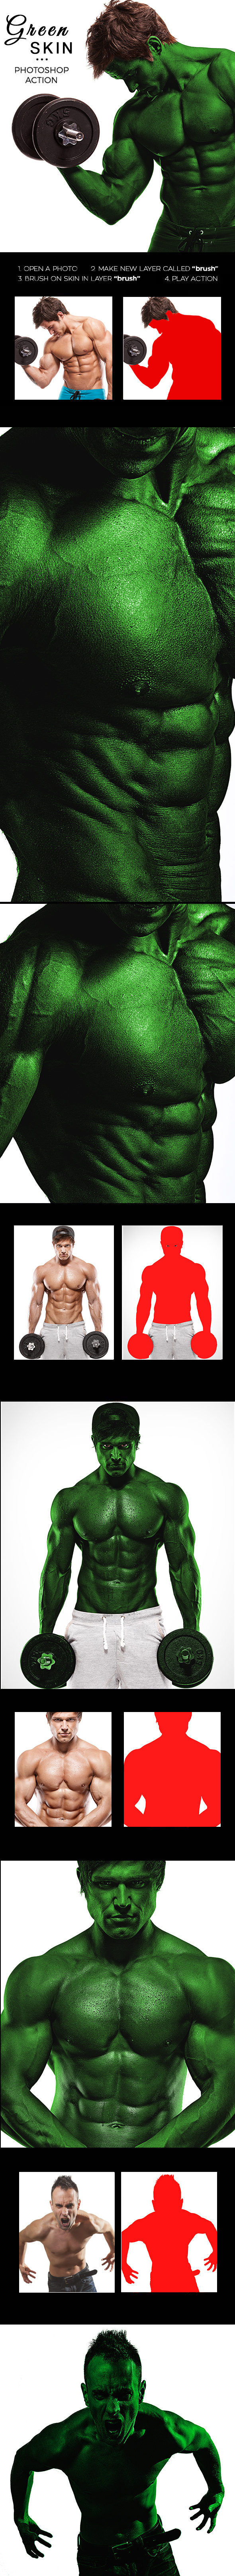 Green Skin Photoshop Action - Photo Effects Actions